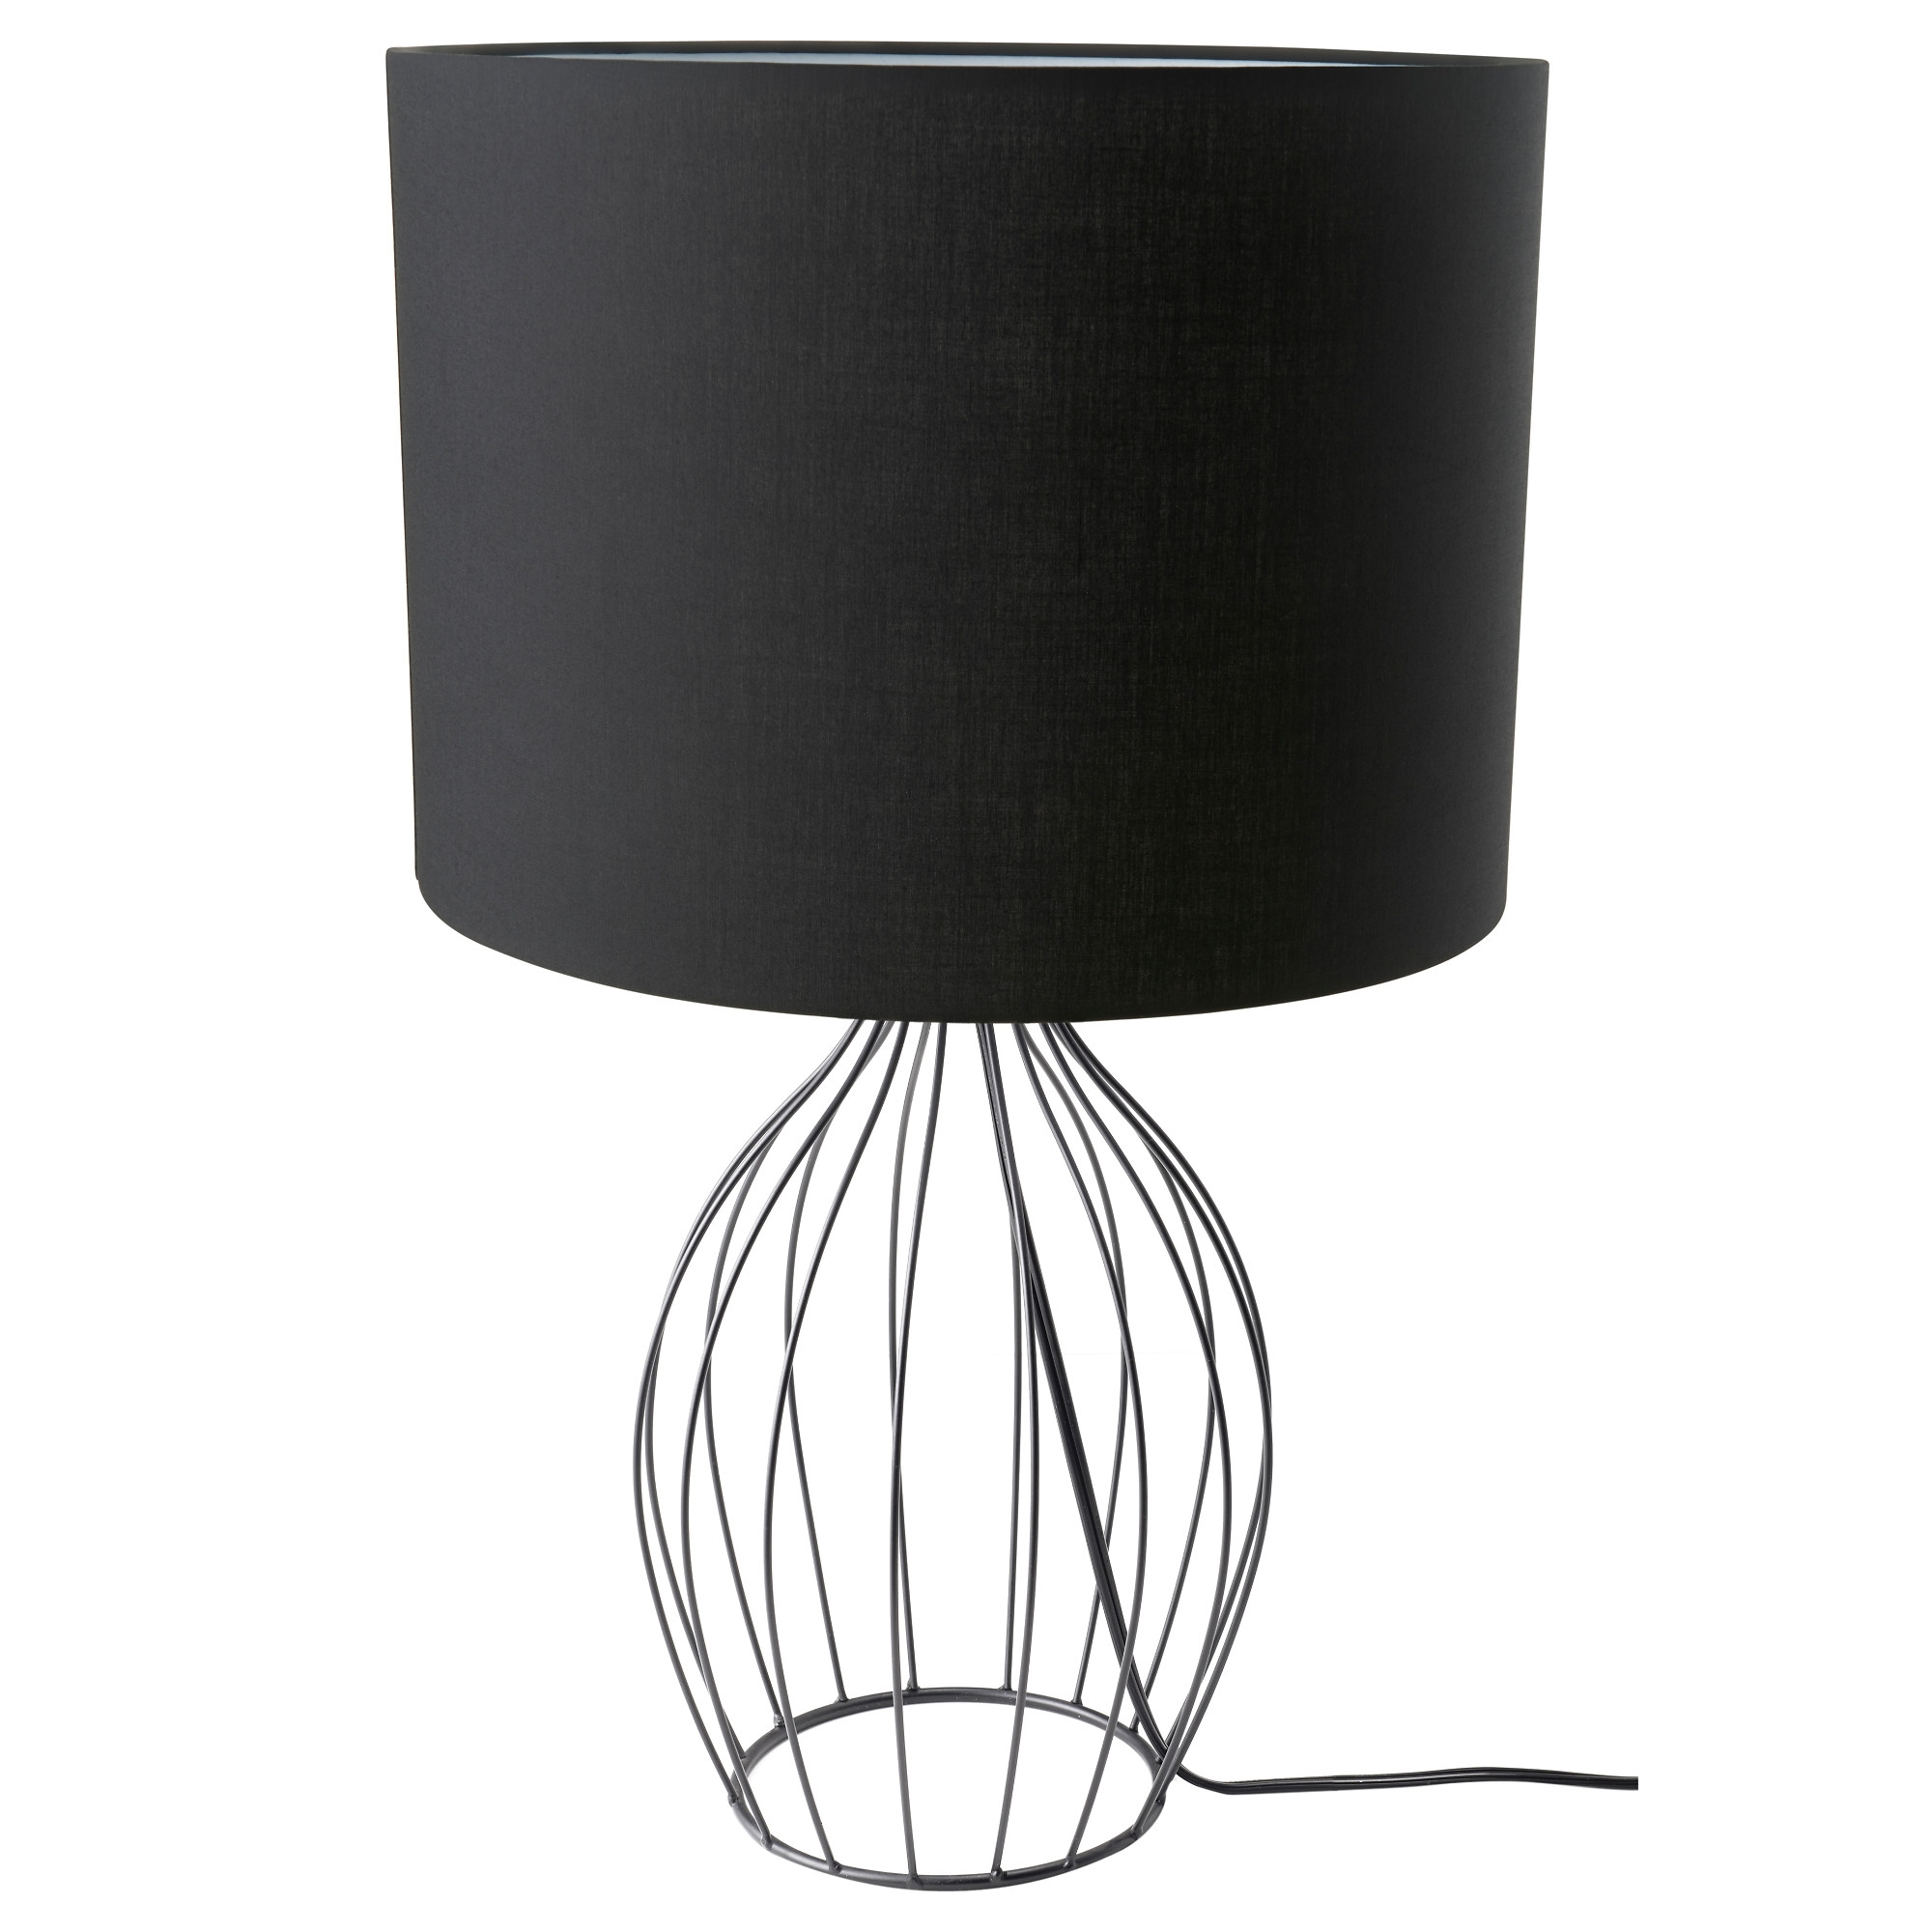 Popular Photo of Living Room Table Lamps At Ikea